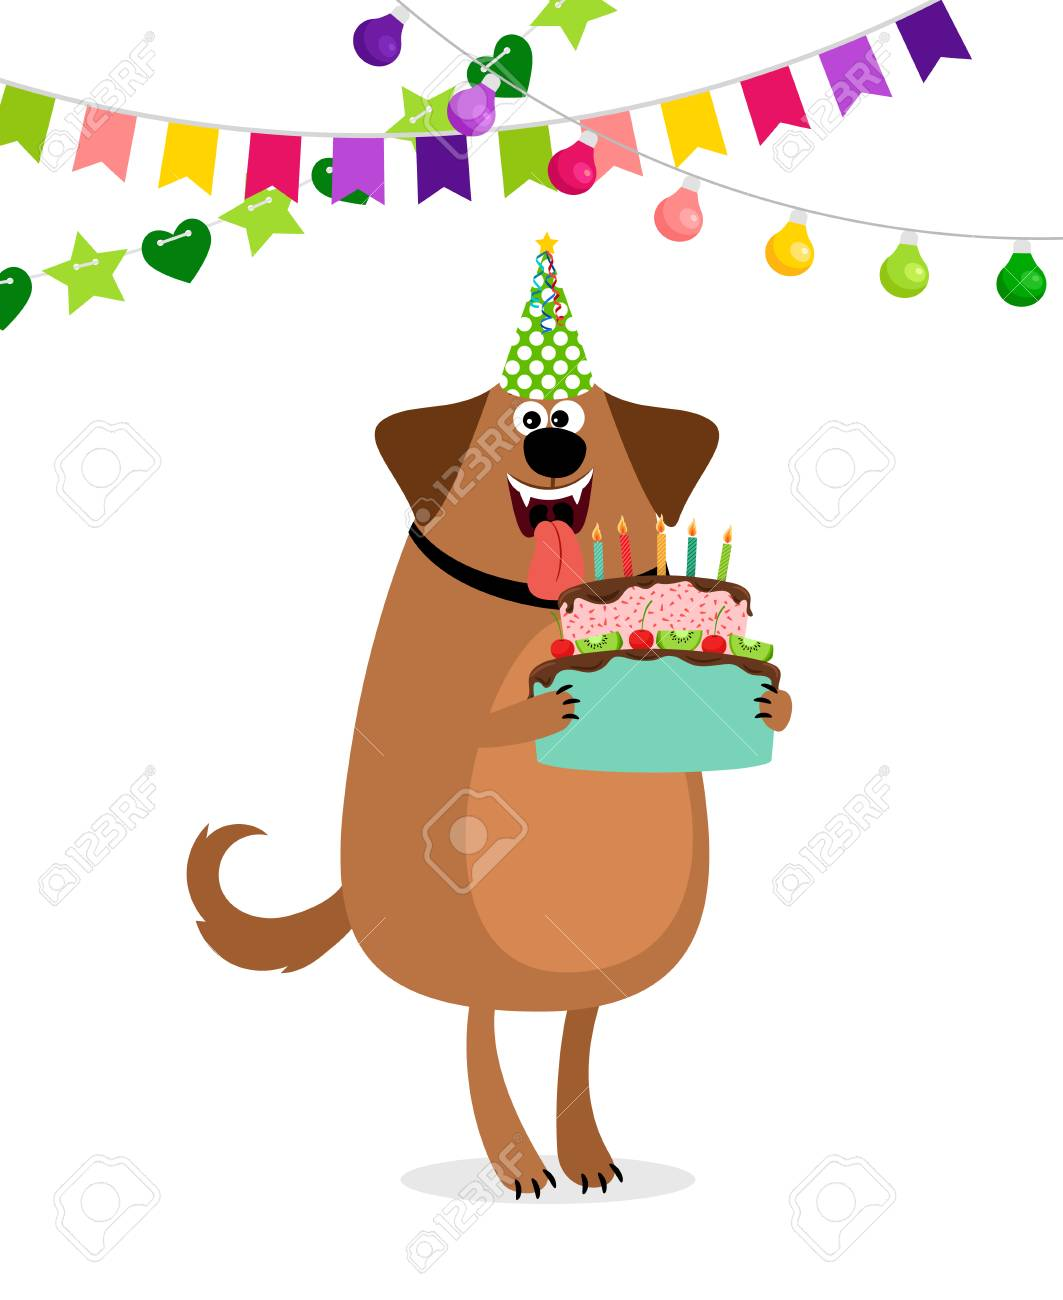 Happy Birthday Card With Cartoon Dog Cake And Bounting Flags Royalty Free Cliparts Vectors And Stock Illustration Image 94934865